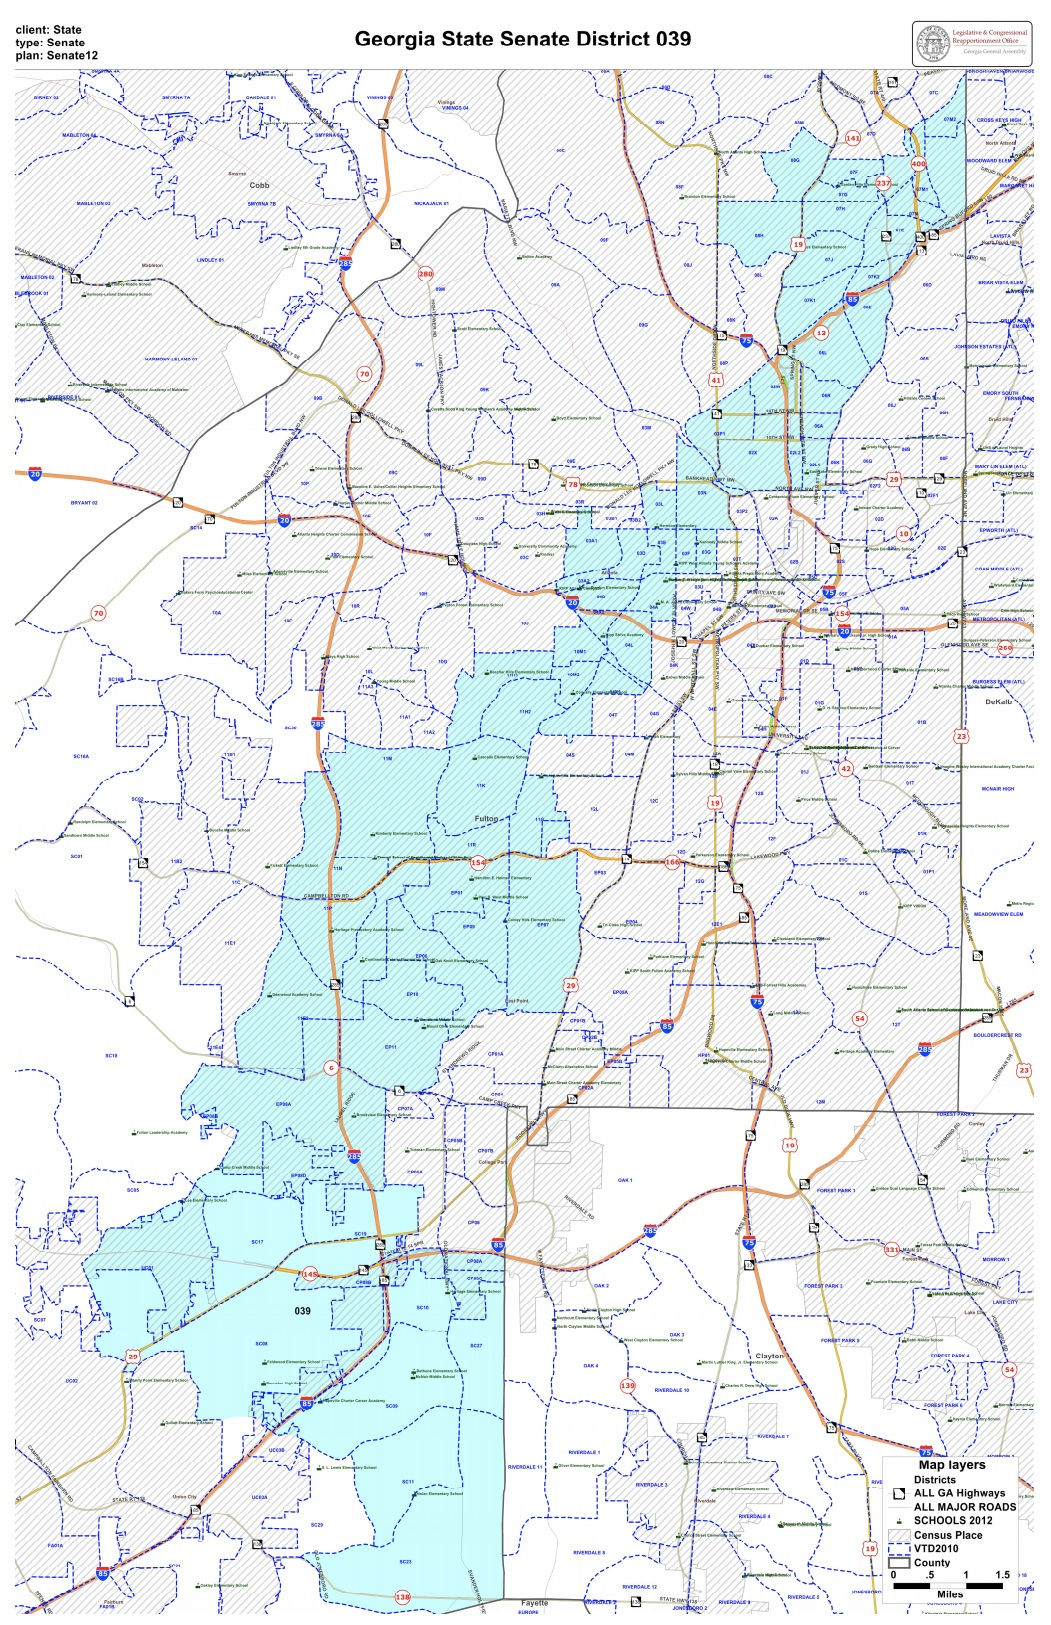 Georgia State Senate District 39 - With a population of about 189,356 constituents, SD39 is located within Fulton County and includes parts of Atlanta, College Park, East Point, Union City, and South Fulton.